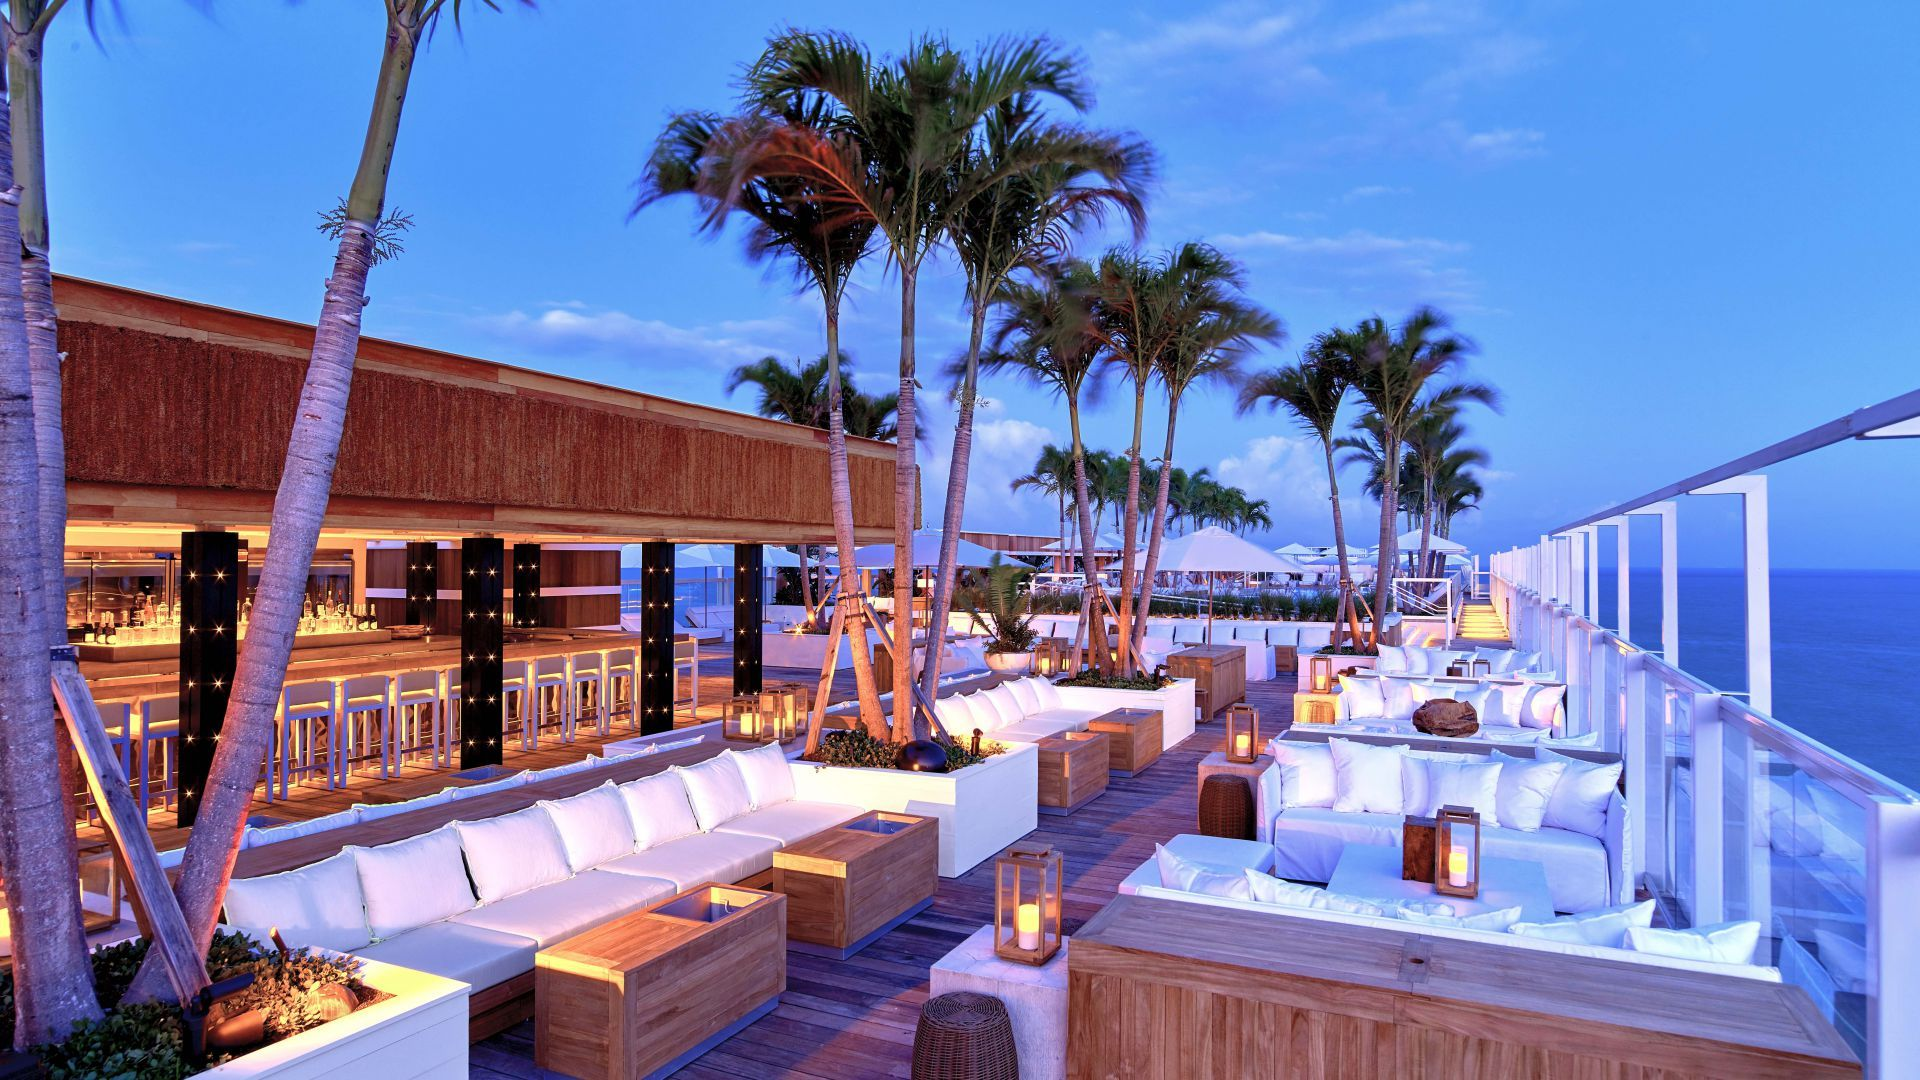 1 Hotel South Beach In Miami Best Rooftop Bars Grand Beach Hotel Rooftop Bar